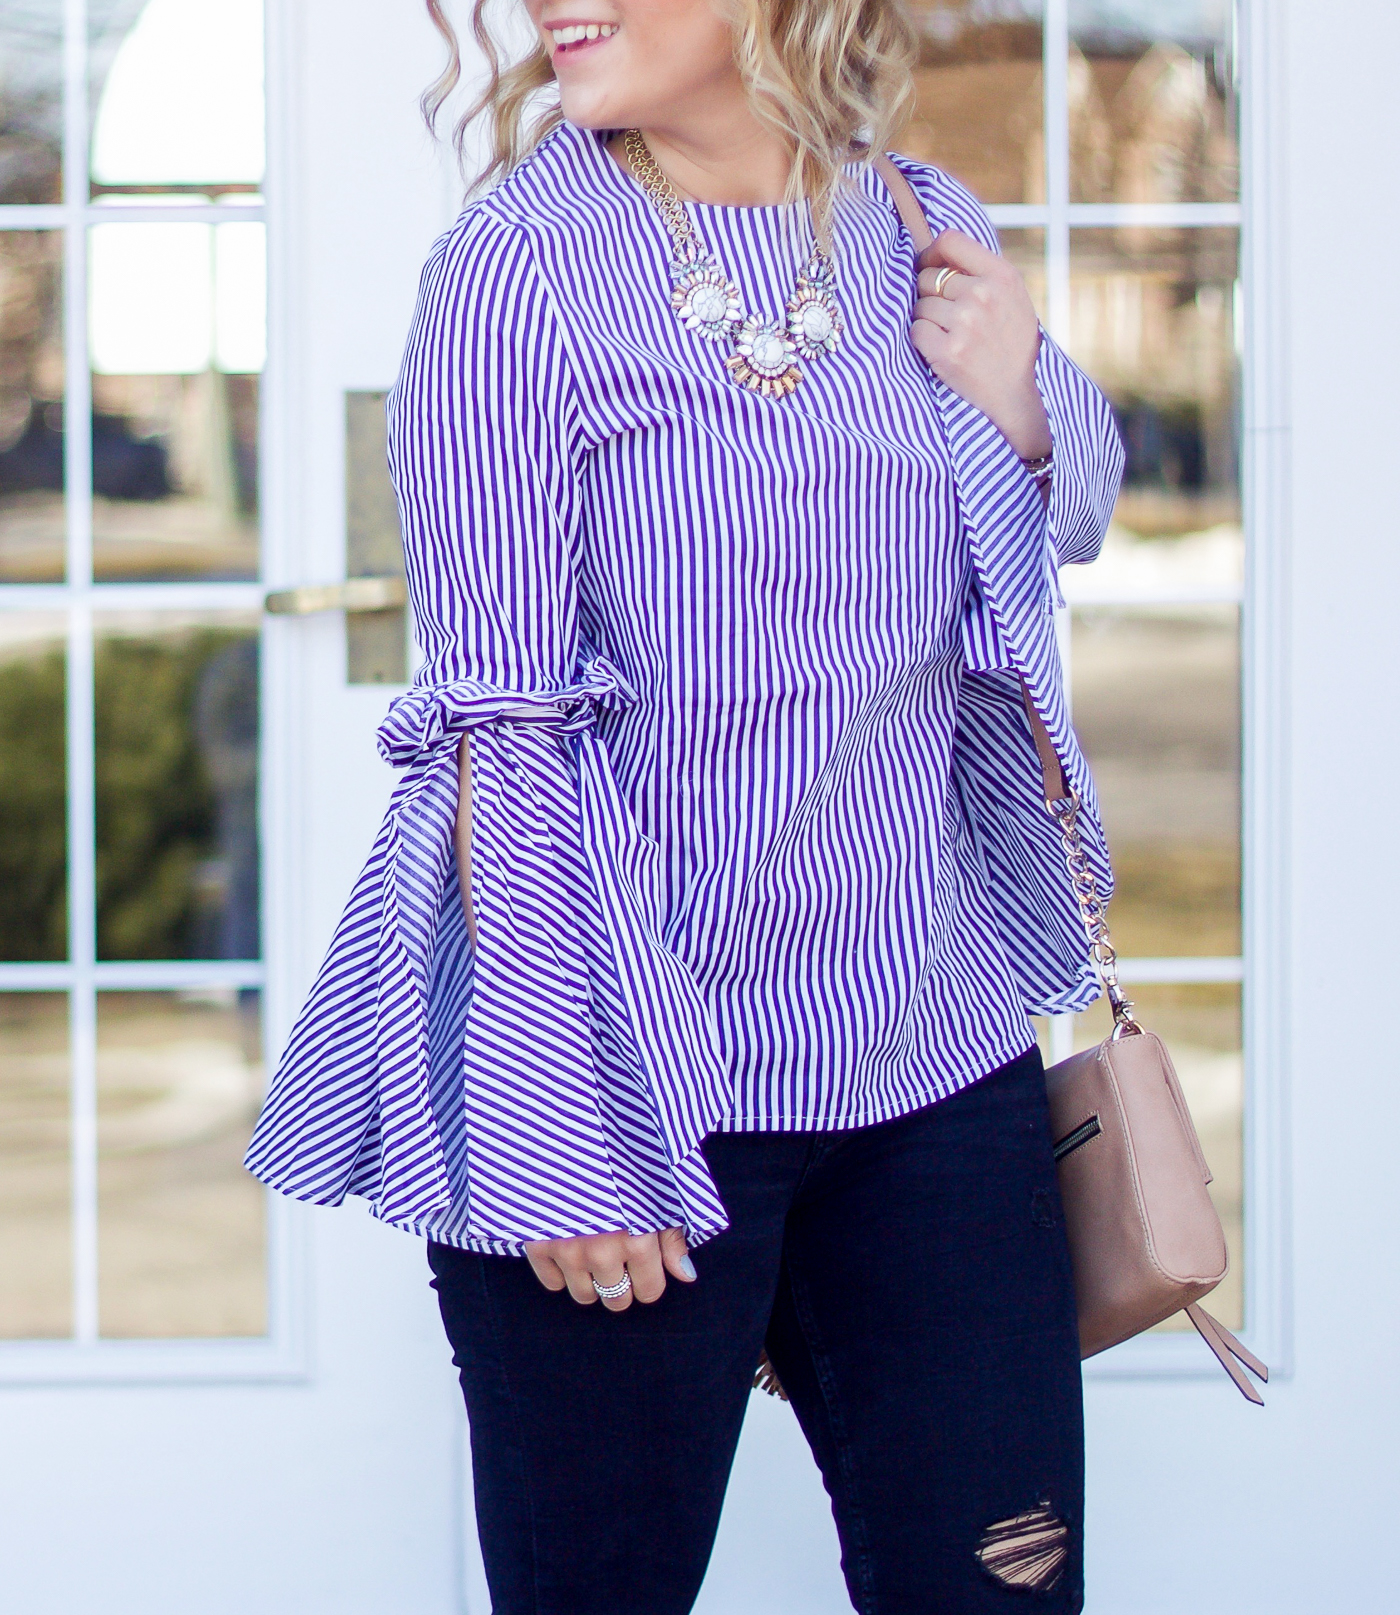 How to wear a bell sleeve top for spring